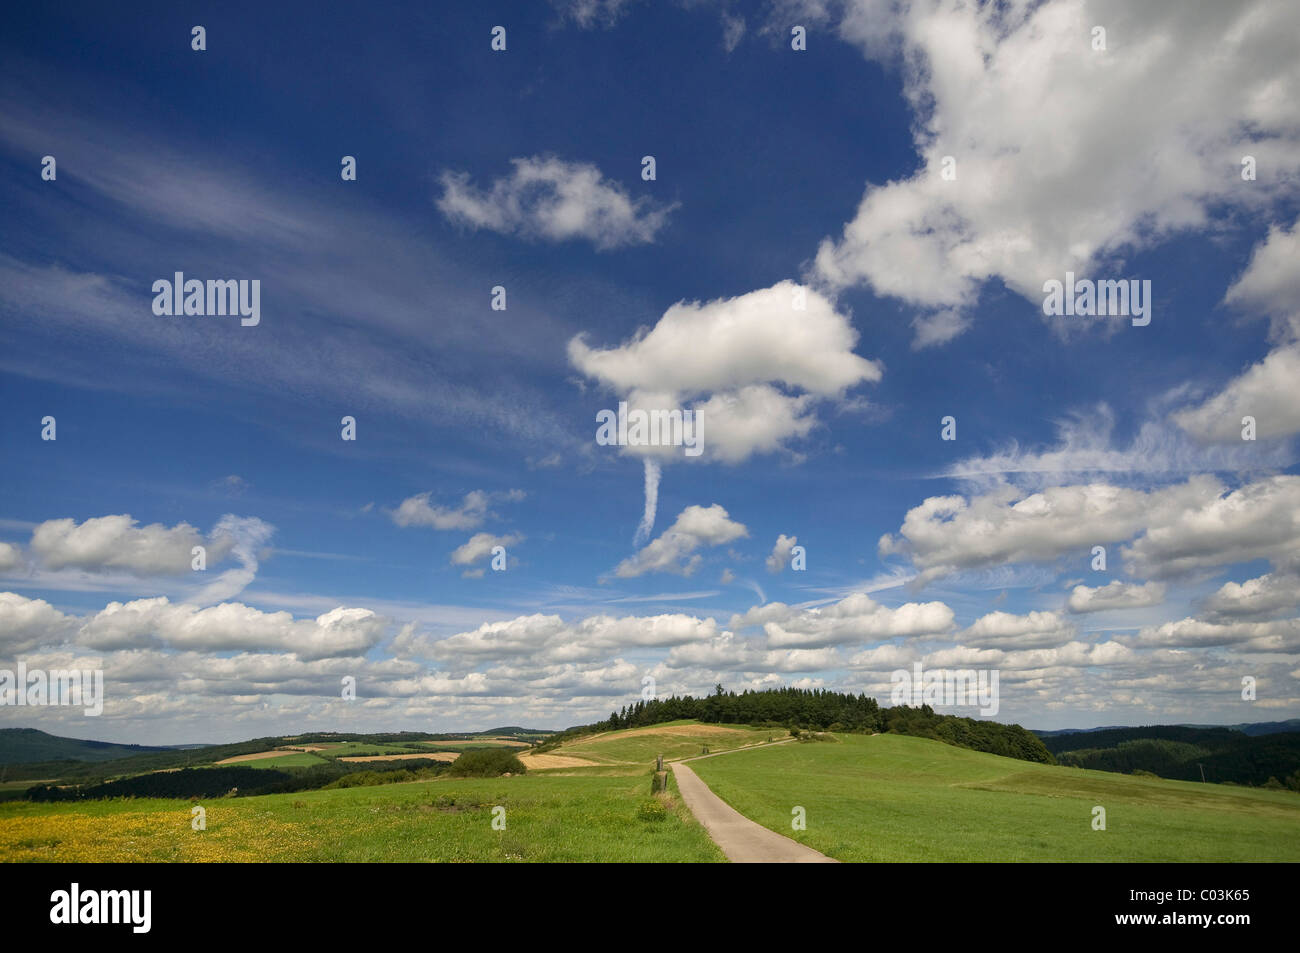 Landscape of meadows and forest, Eifel Nature Park, Germany, Europe - Stock Image